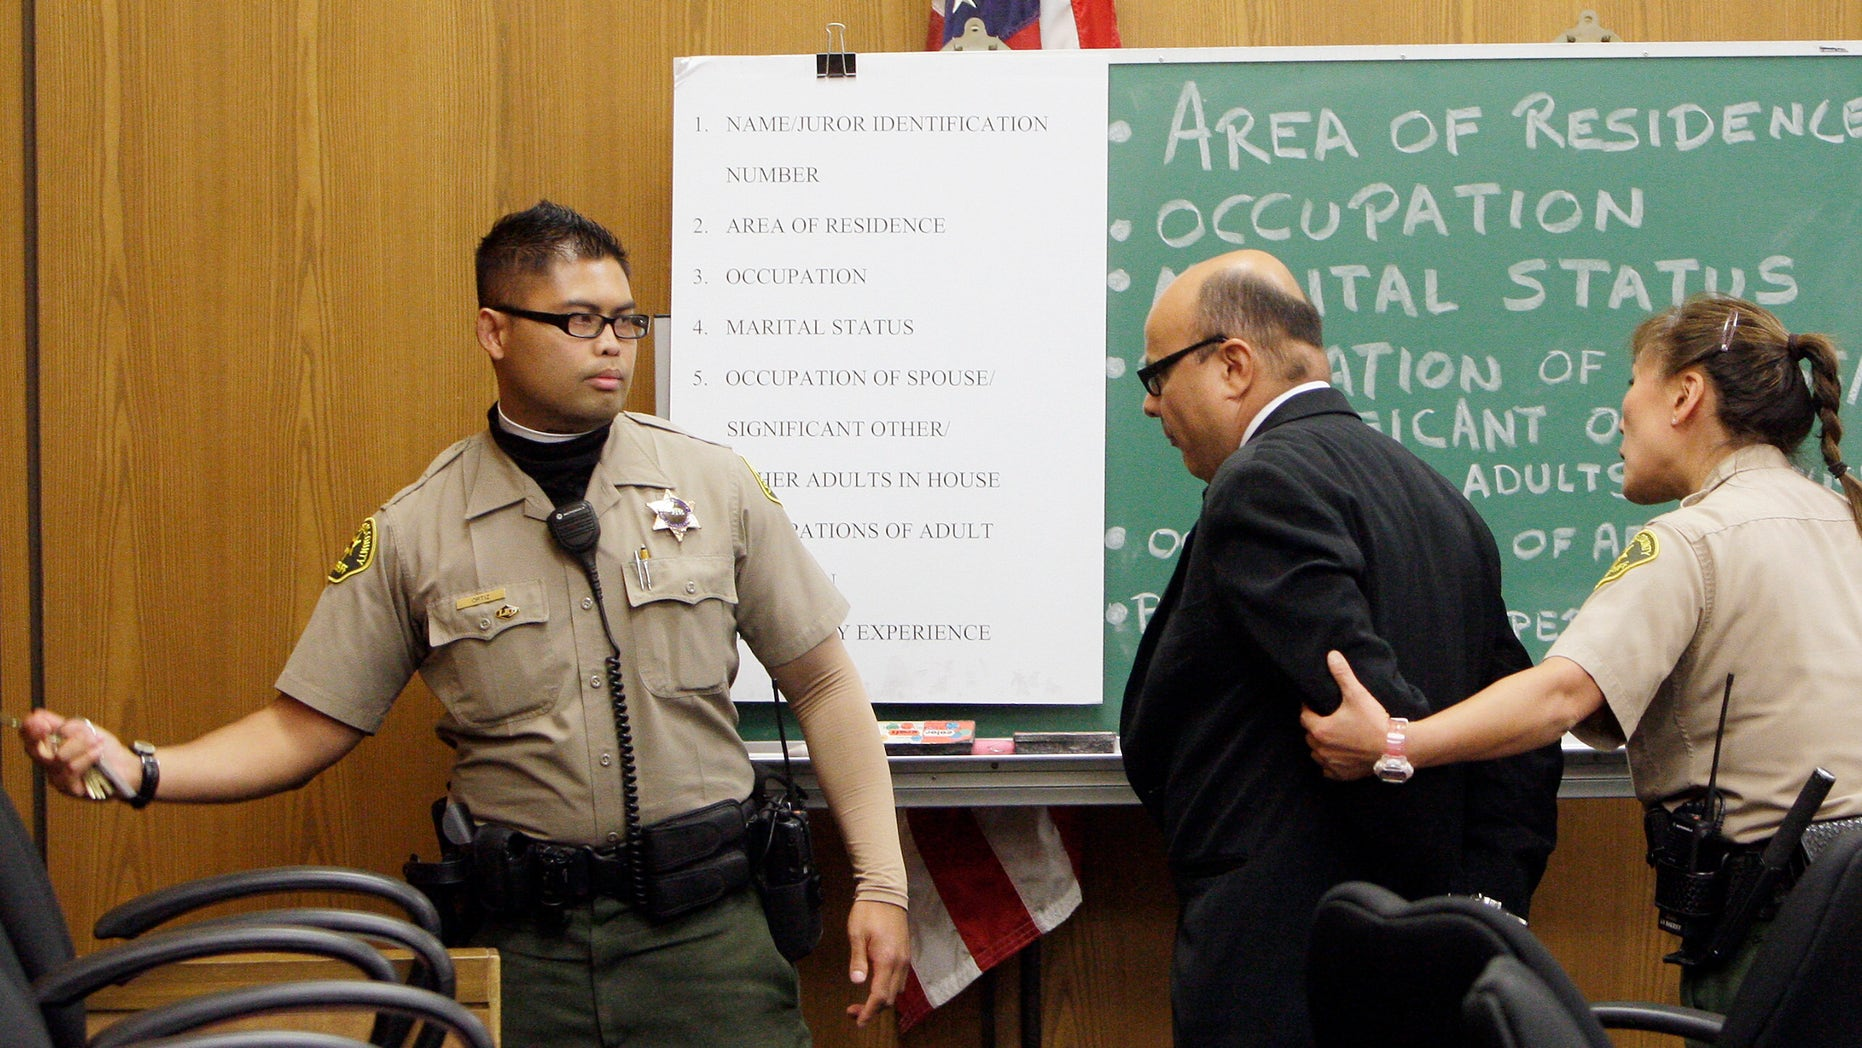 September 8: Truck driver Marcos Costa, middle, is taken into custody after his sentencing in court to seven years and four months in state prison in Pasadena, California. Costa was behind the wheel of a double-decker hauler that lost its brakes on a mountain highway, descended into a Los Angeles foothill suburb in April 2009. The rig smashed into cross-traffic and a building, killing two people.